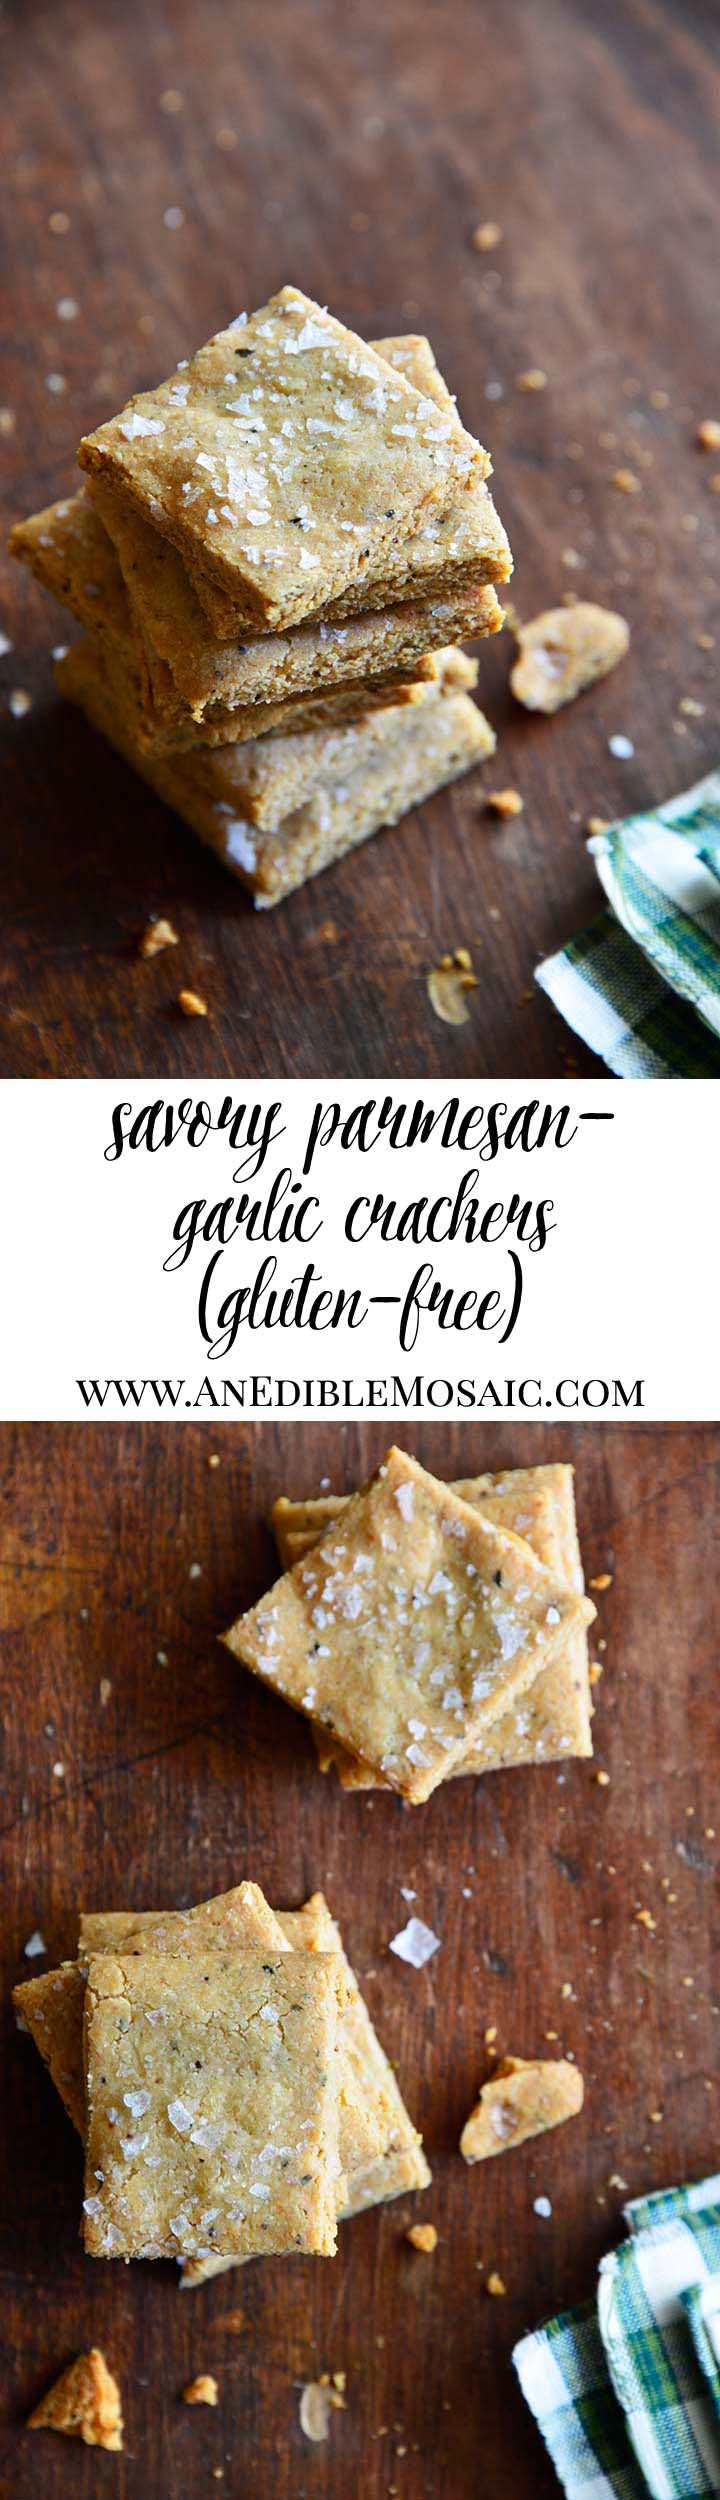 Gluten Free Savory Parmesan-Garlic Crackers Long Pin